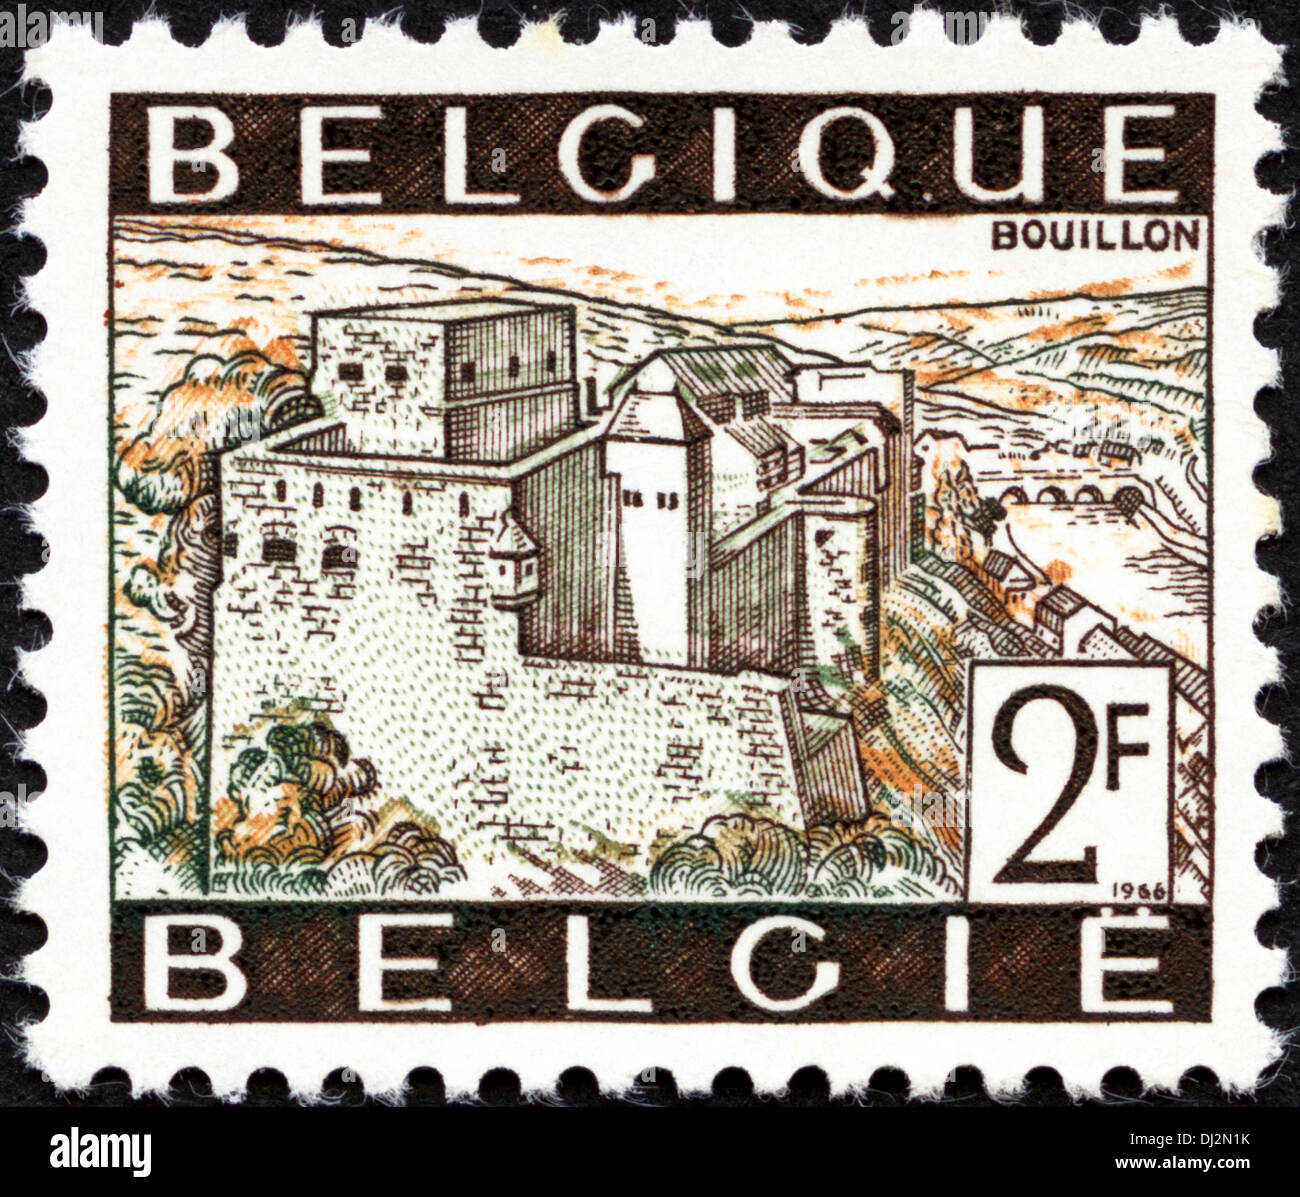 postage stamp Belgium 2F featuring the town of Bouillon dated 1966 - Stock Image